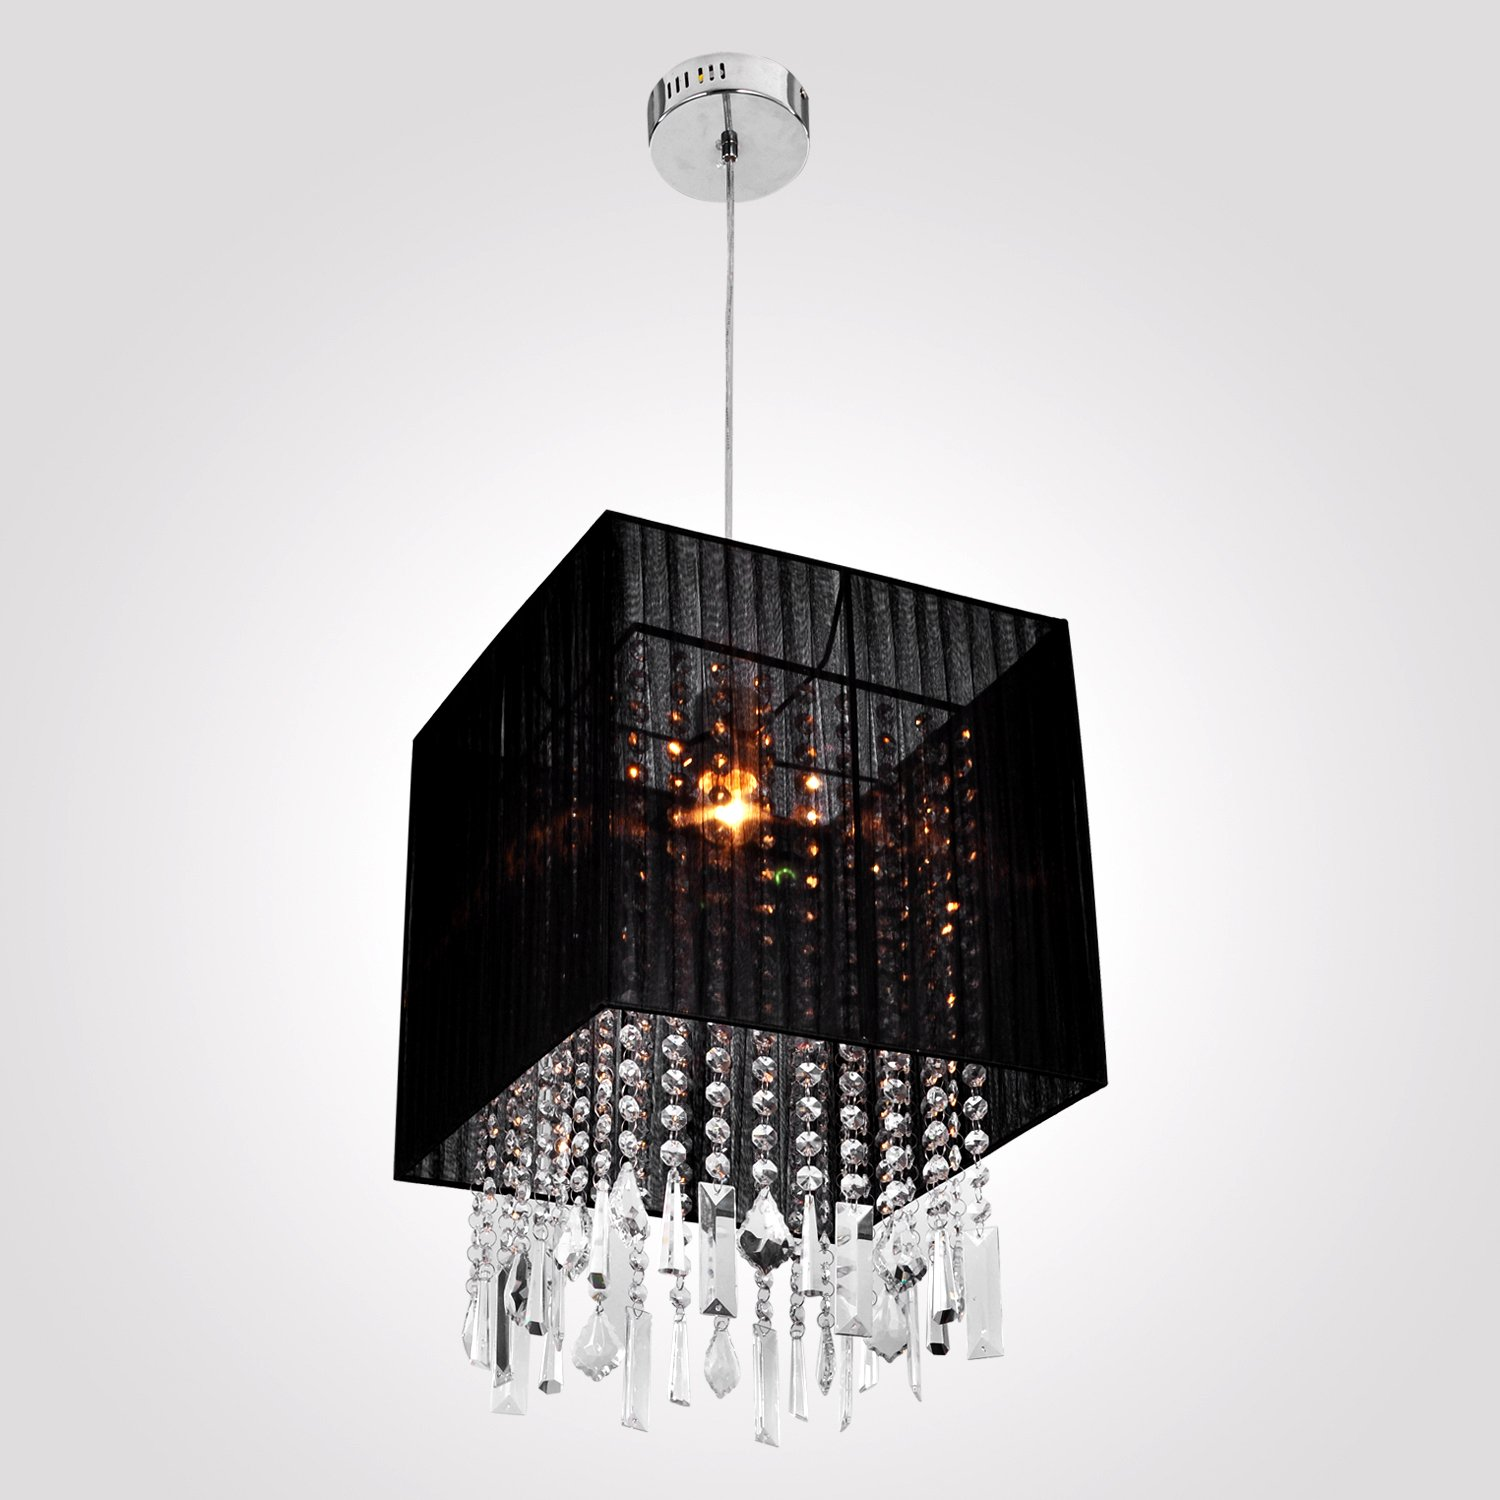 Lightinthebox Stylish Pendant Light With Black Fabric Shade Modern Mini Style Ceiling Fixture For Dining Room Bedroom Living Voltage 110v